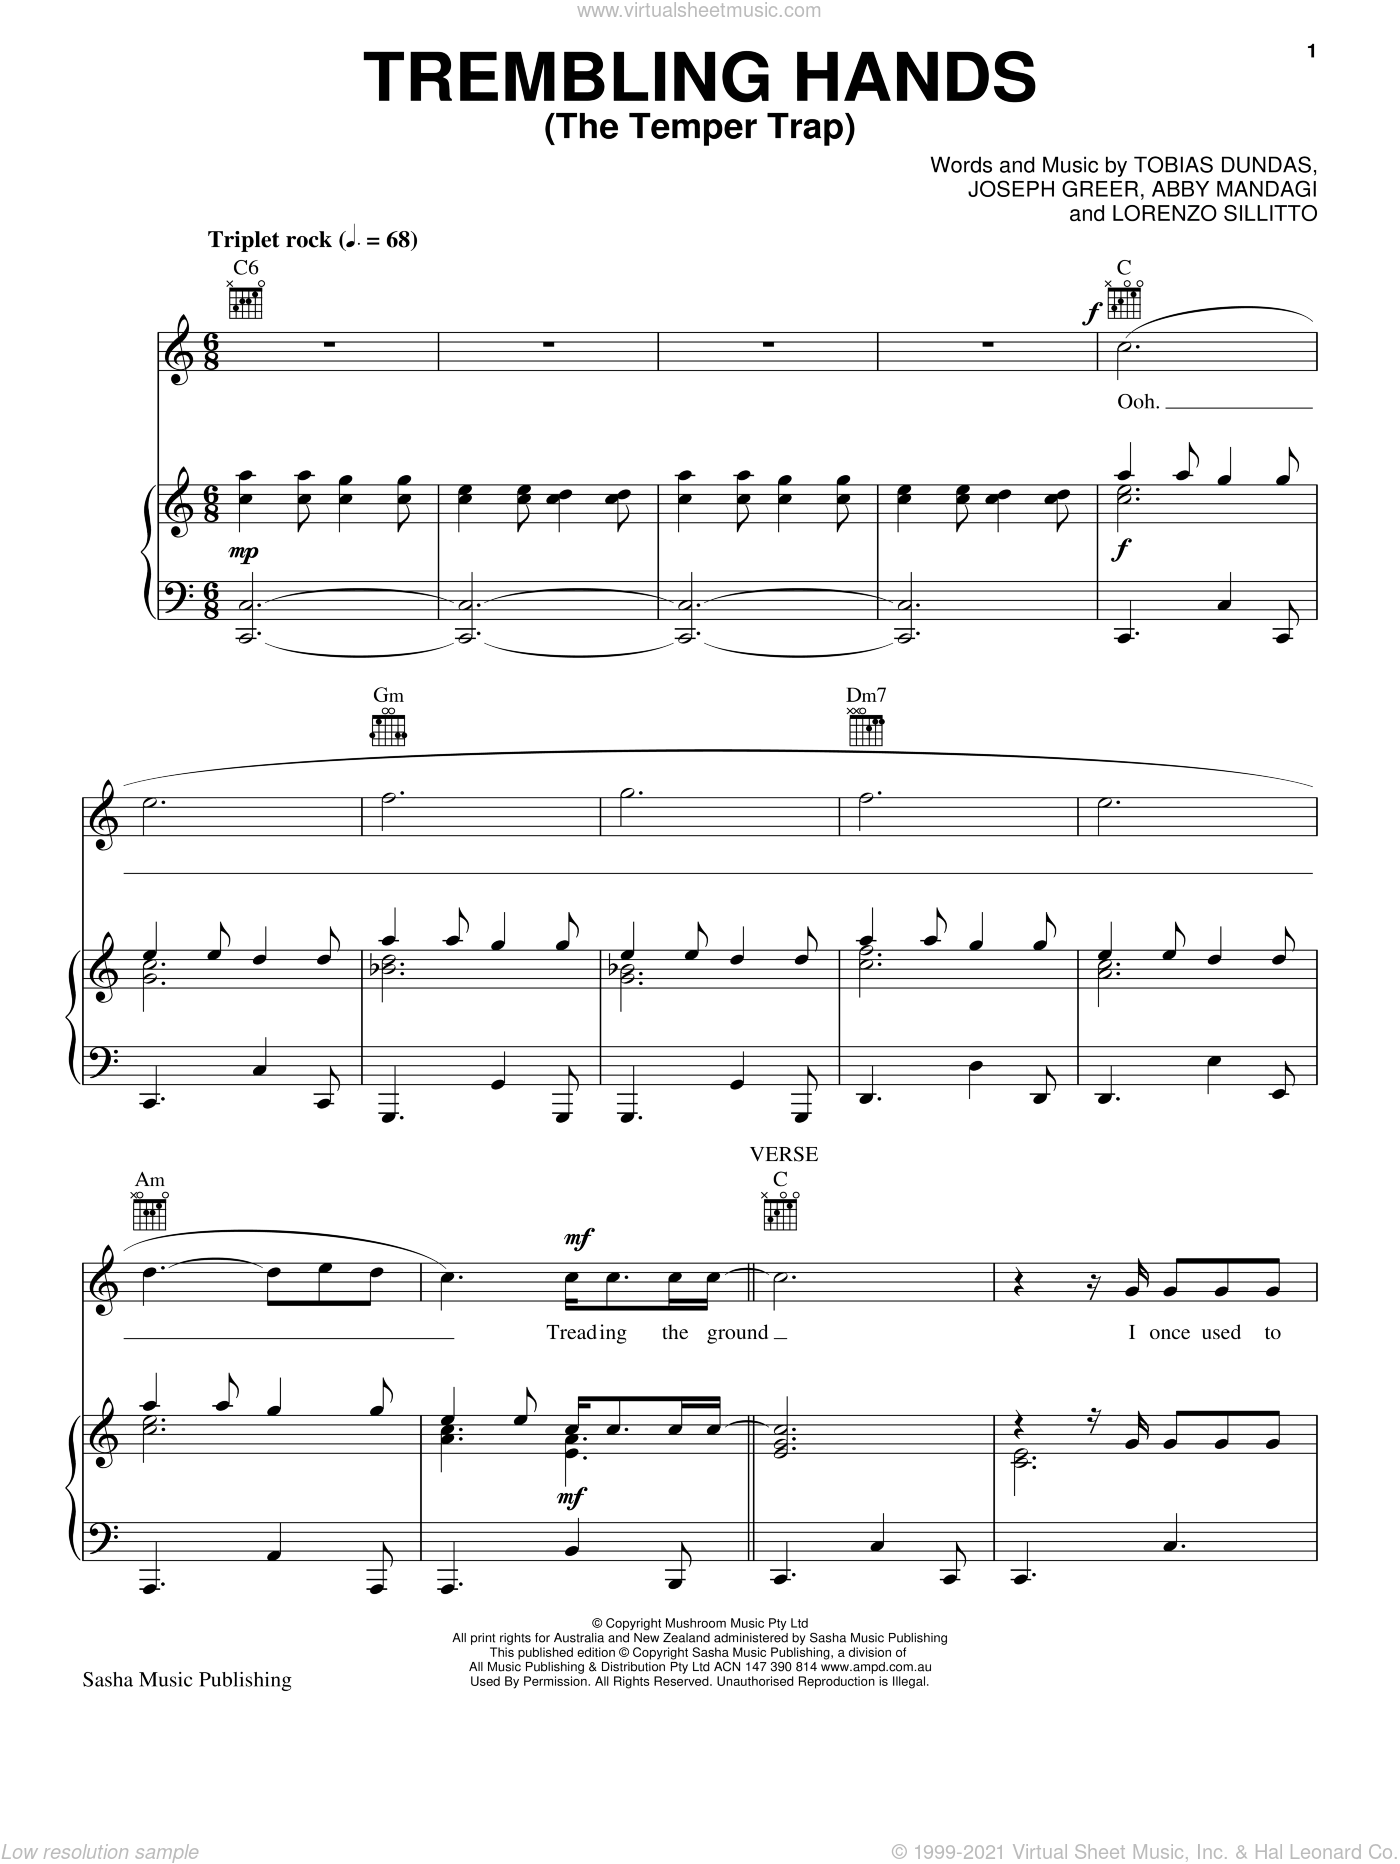 Trembling Hands sheet music for voice, piano or guitar by Temper Trap, Abby Mandagi, Joseph Greer, Lorenzo Sillitto and Tobias Dundas, intermediate skill level